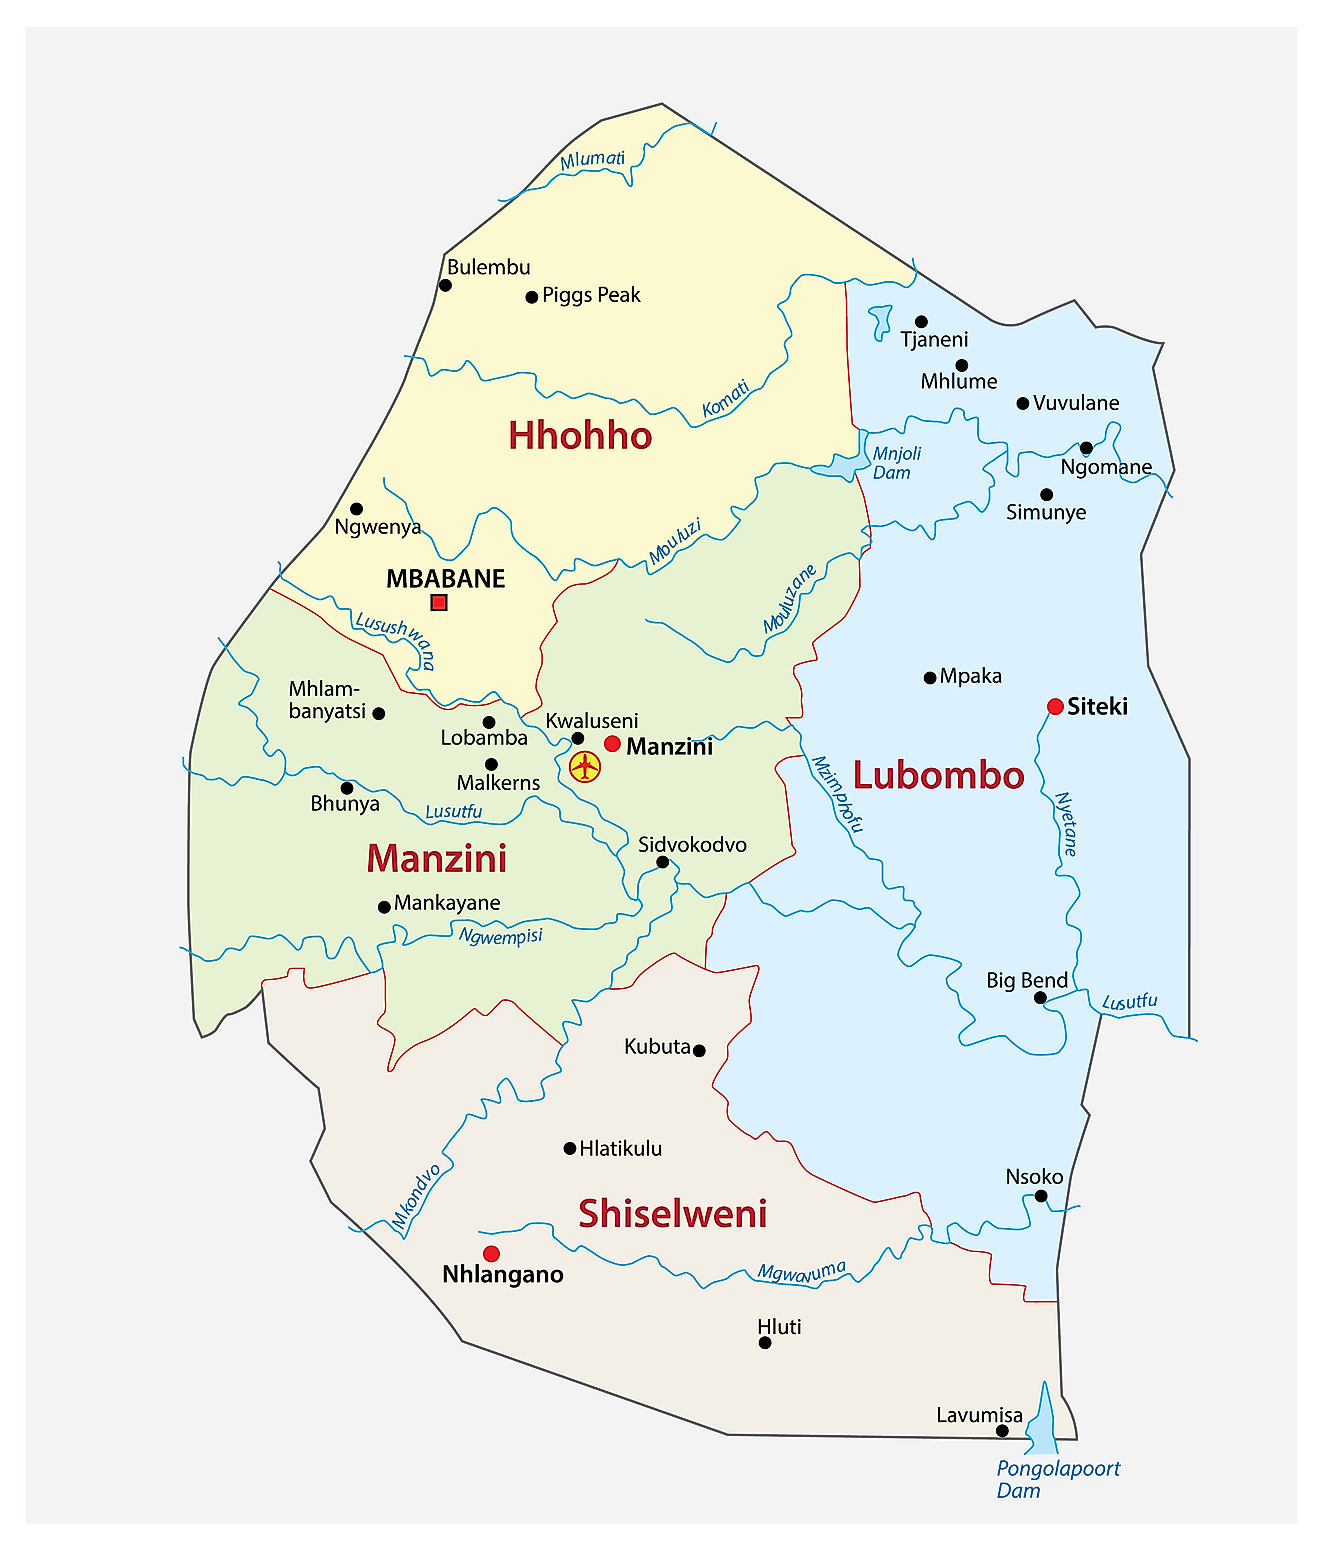 Administrative Map of Eswatini showing the four regions of the country, their capitals, and the national capital of Mbabane.